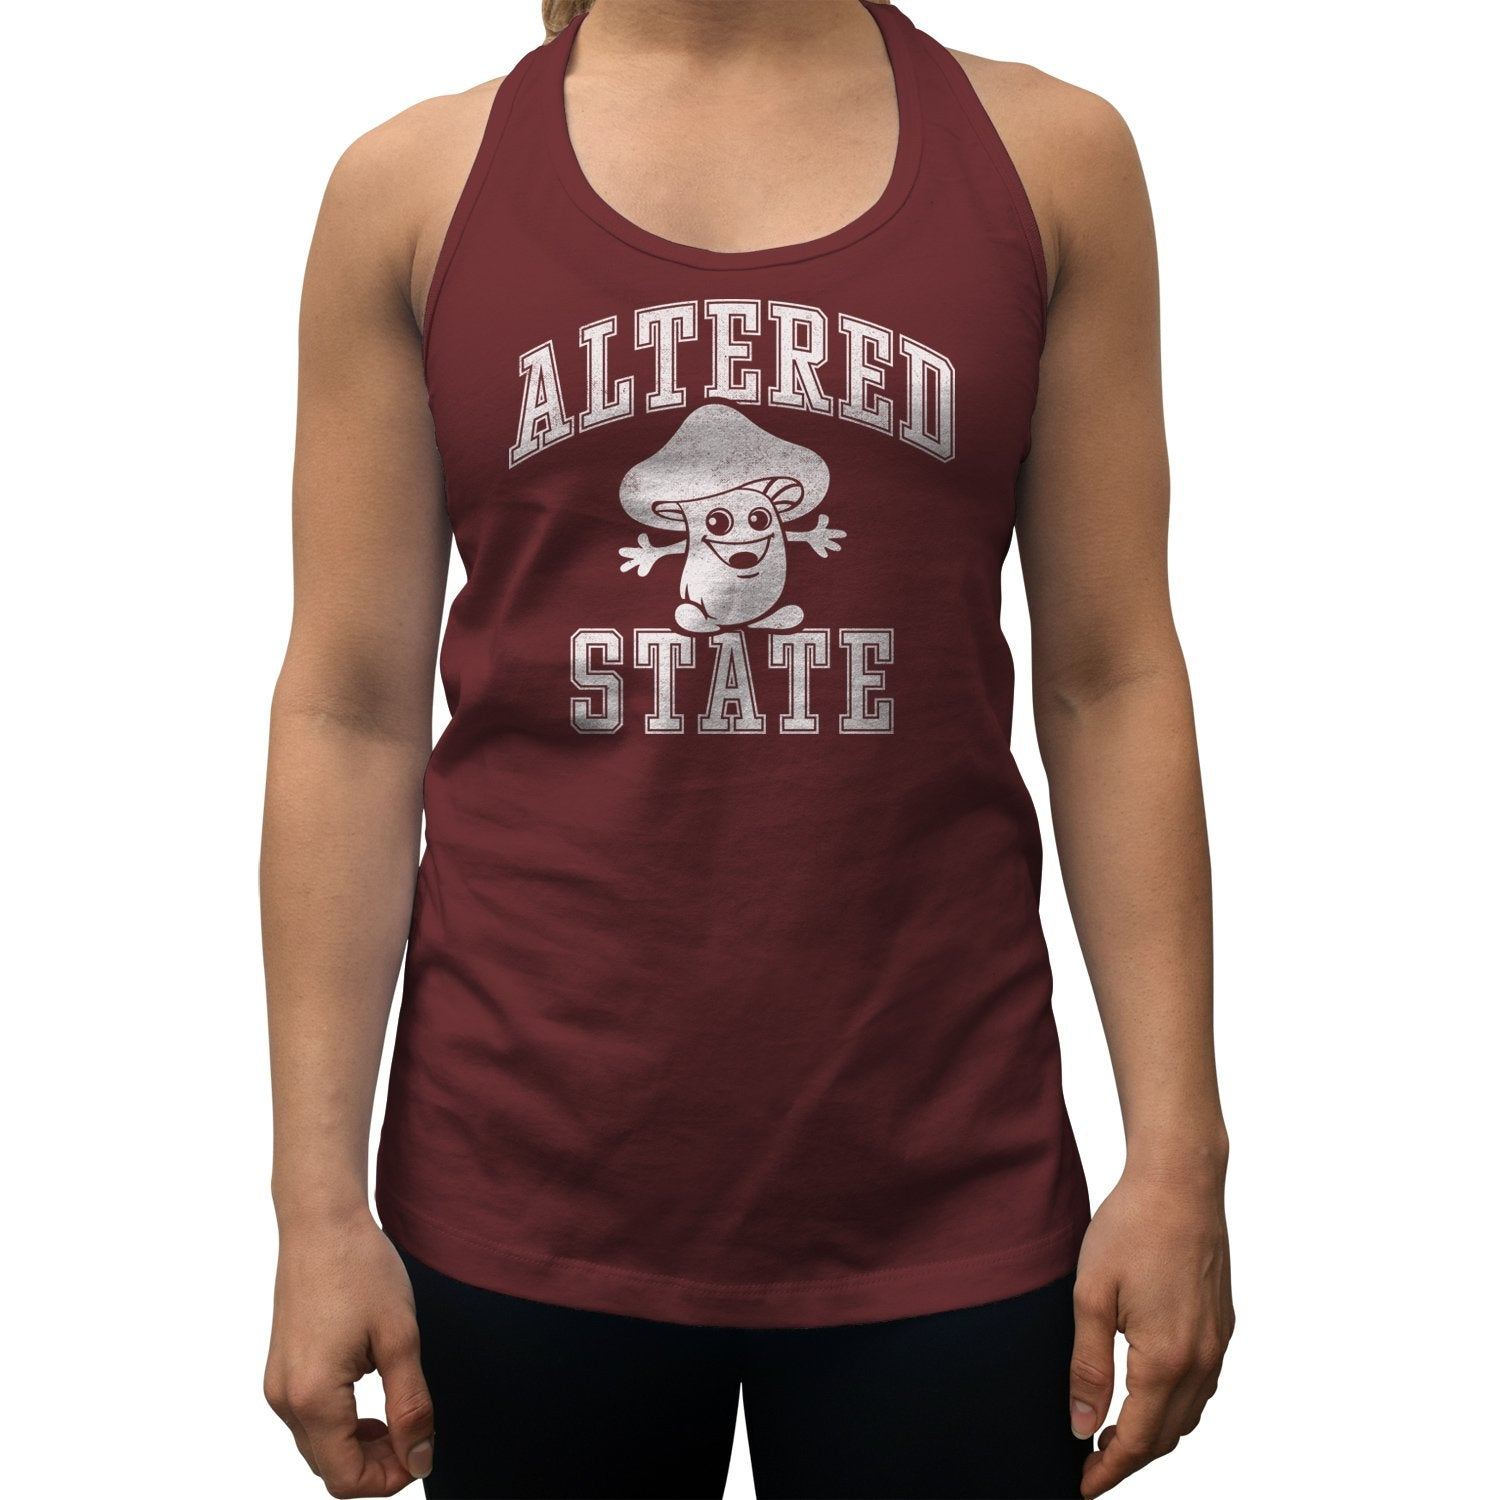 Women's Altered State Racerback Tank Top